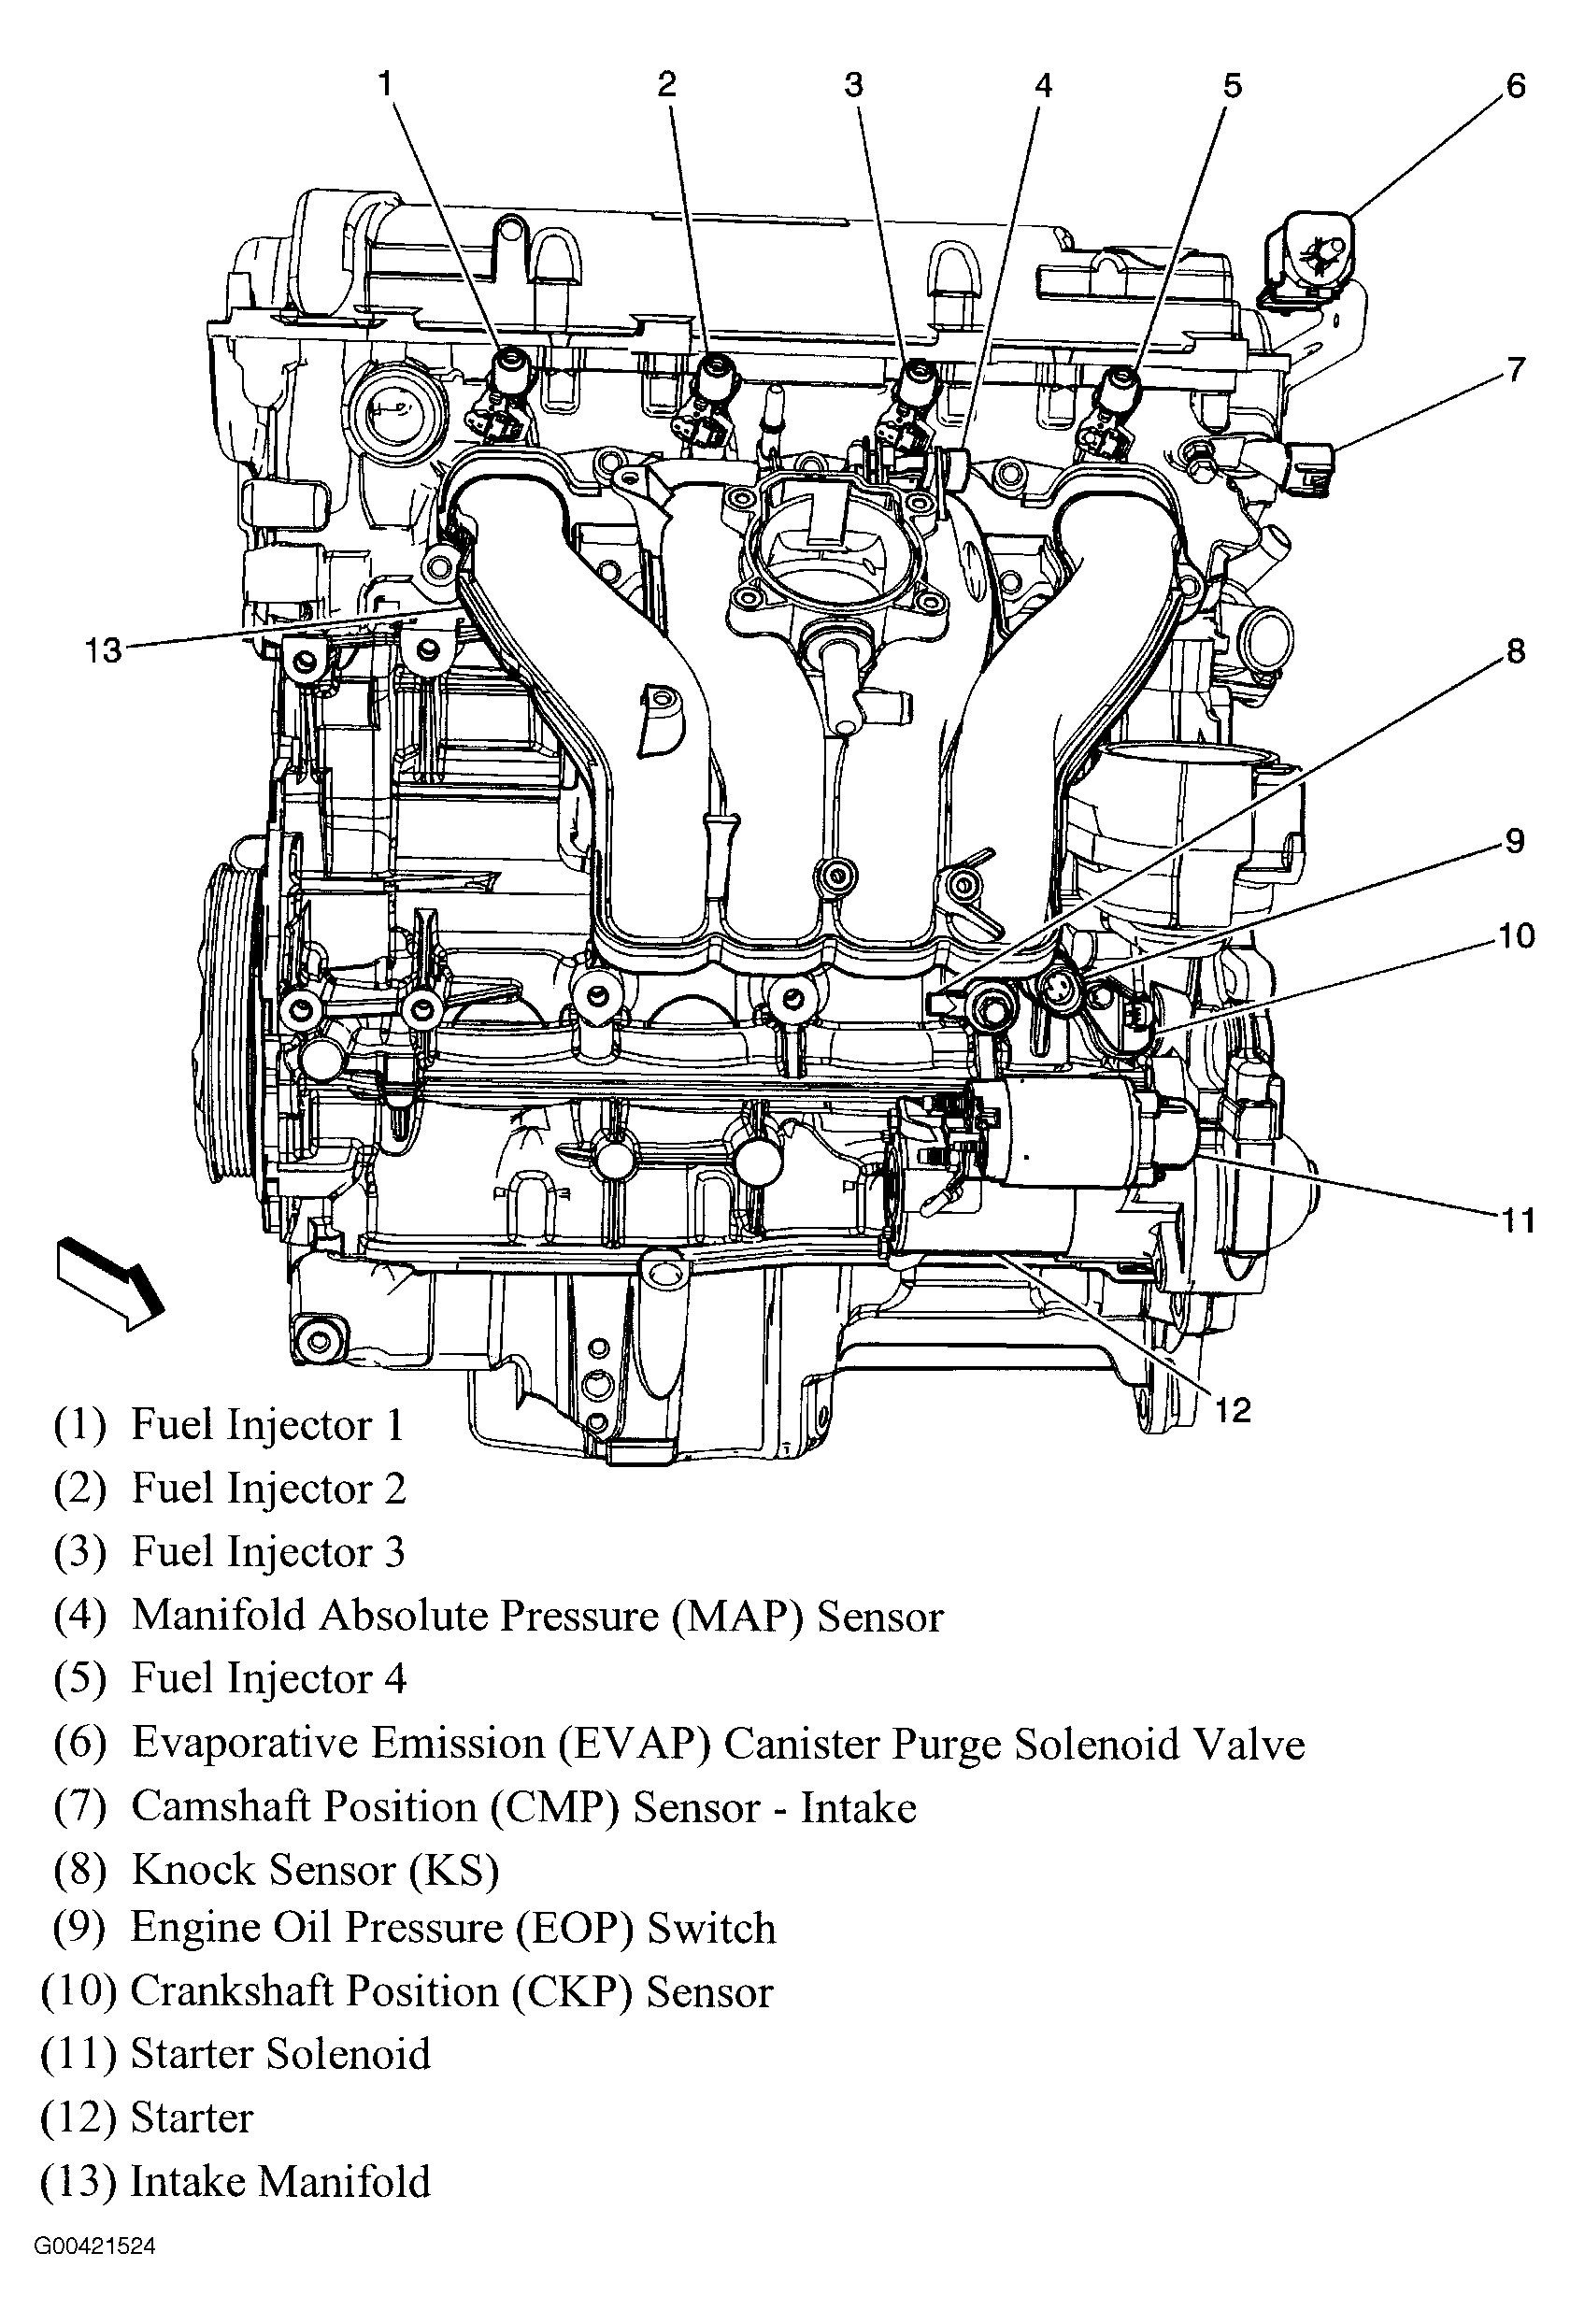 S10 4 Cylinder Engine Diagram - wiring diagram on the net  Cylinder Engine Diagram on